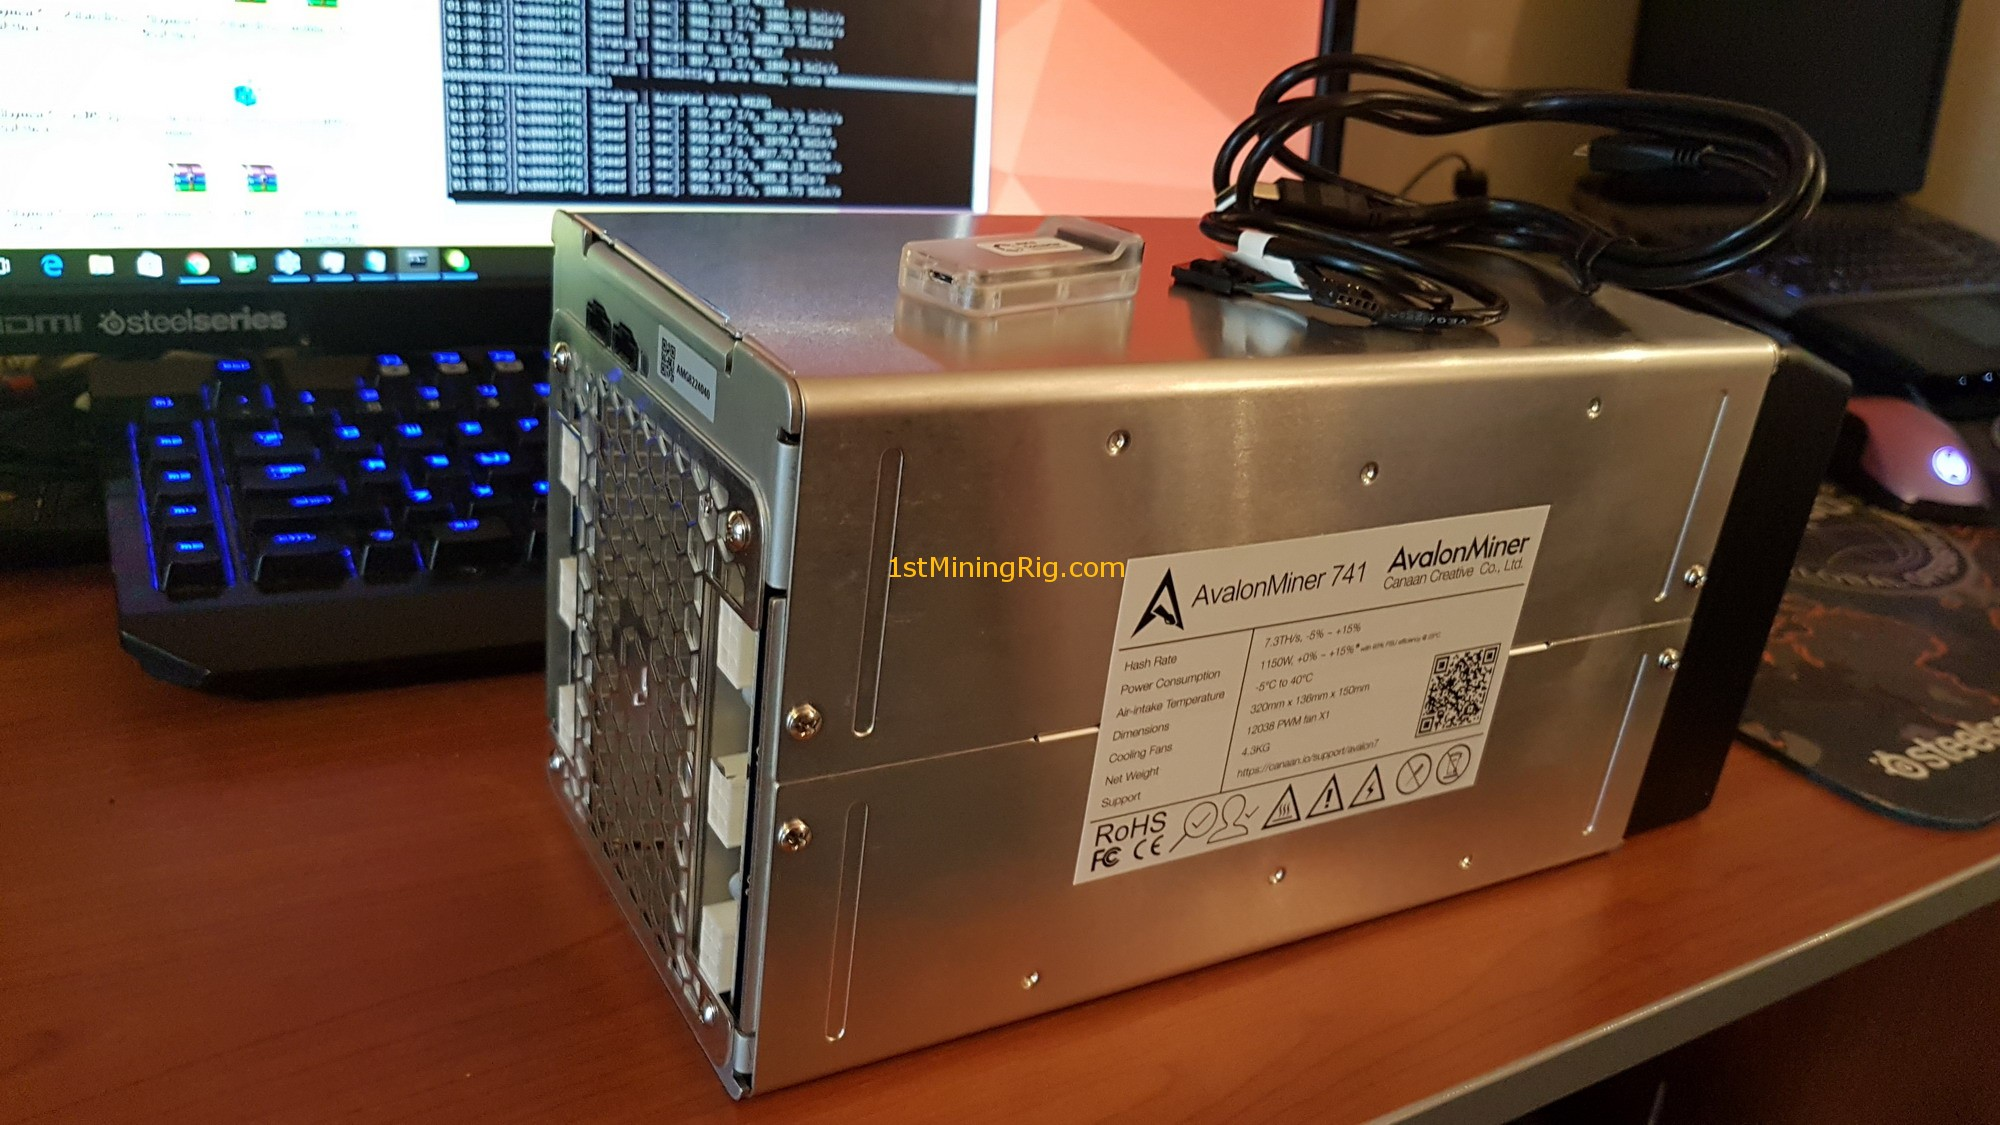 avalonminer 741 cryptocurrency mining system